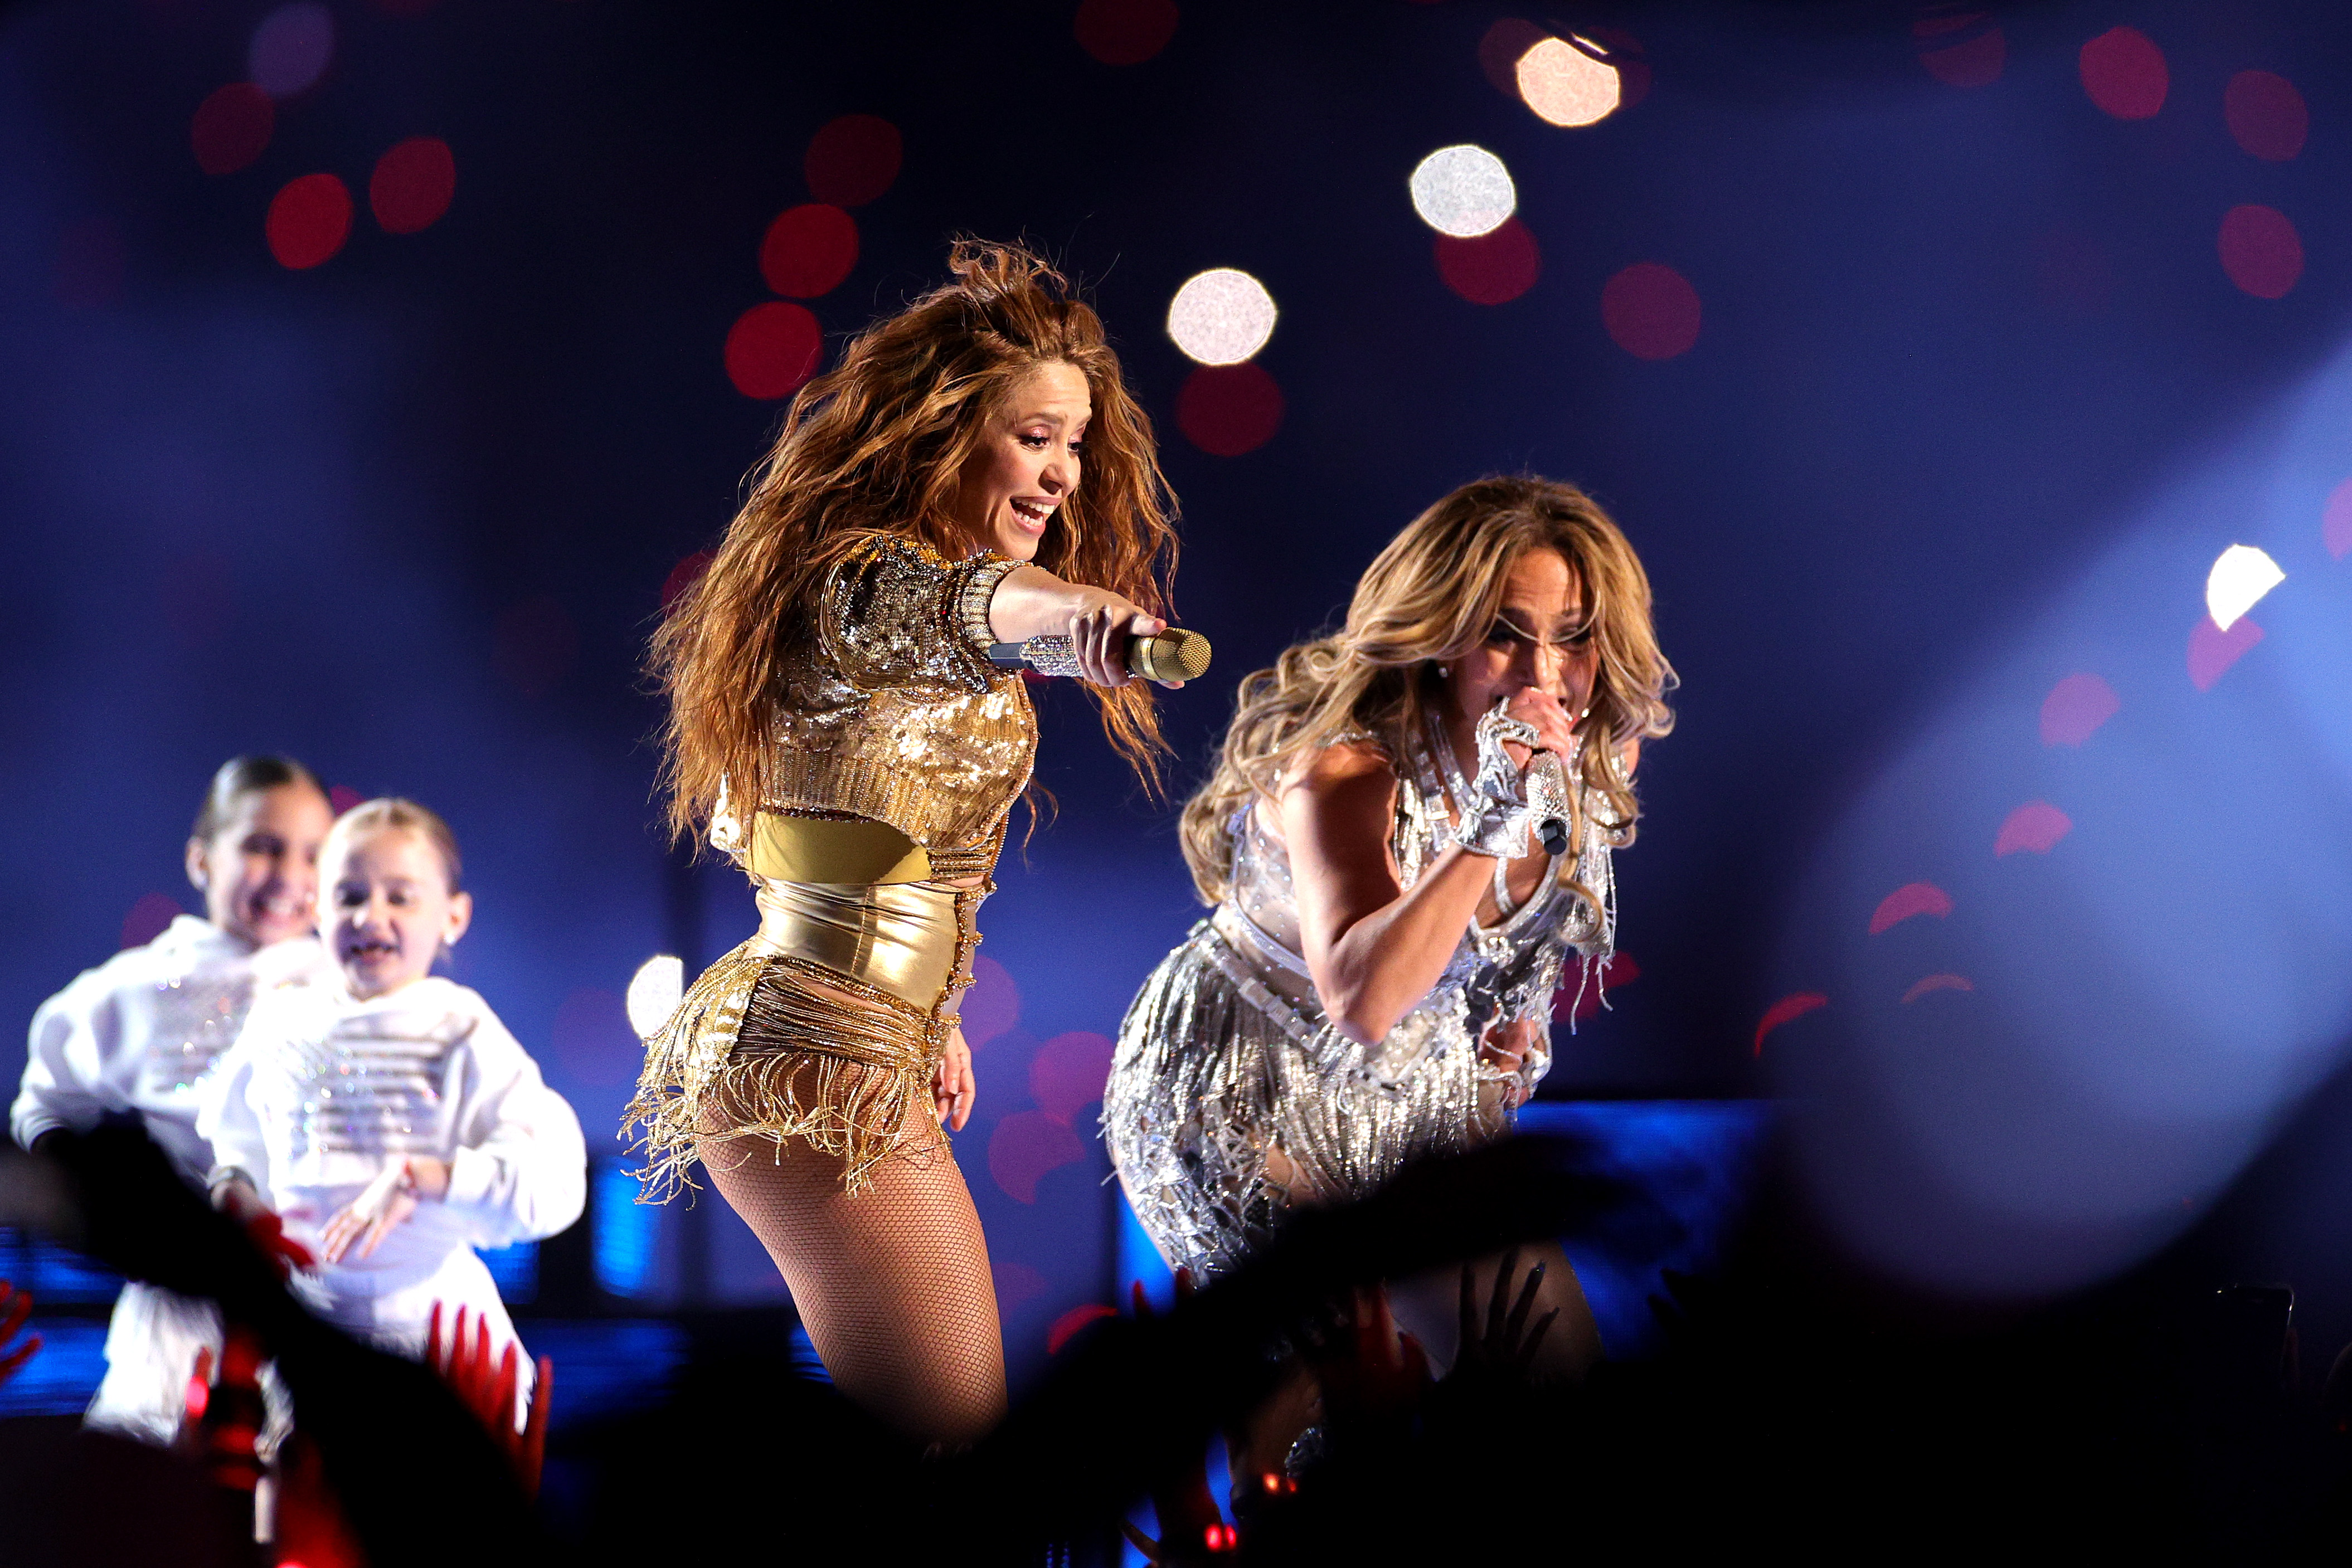 Here's What You May Have Missed From The Super Bowl Latino Gang Performance